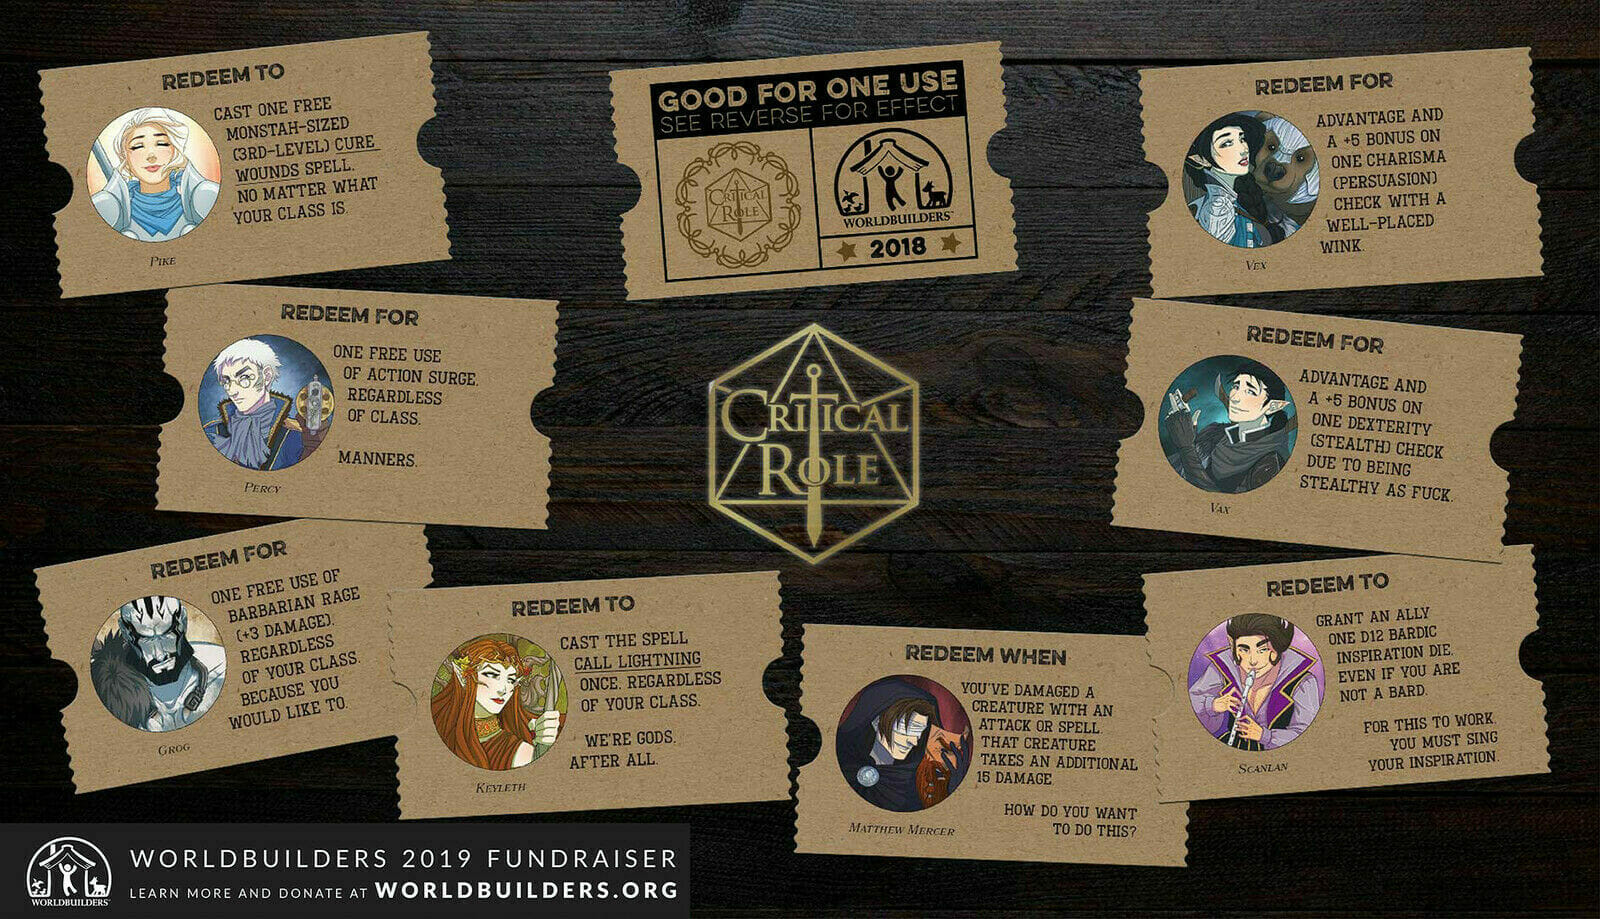 D&D Cards donated by Critical Role